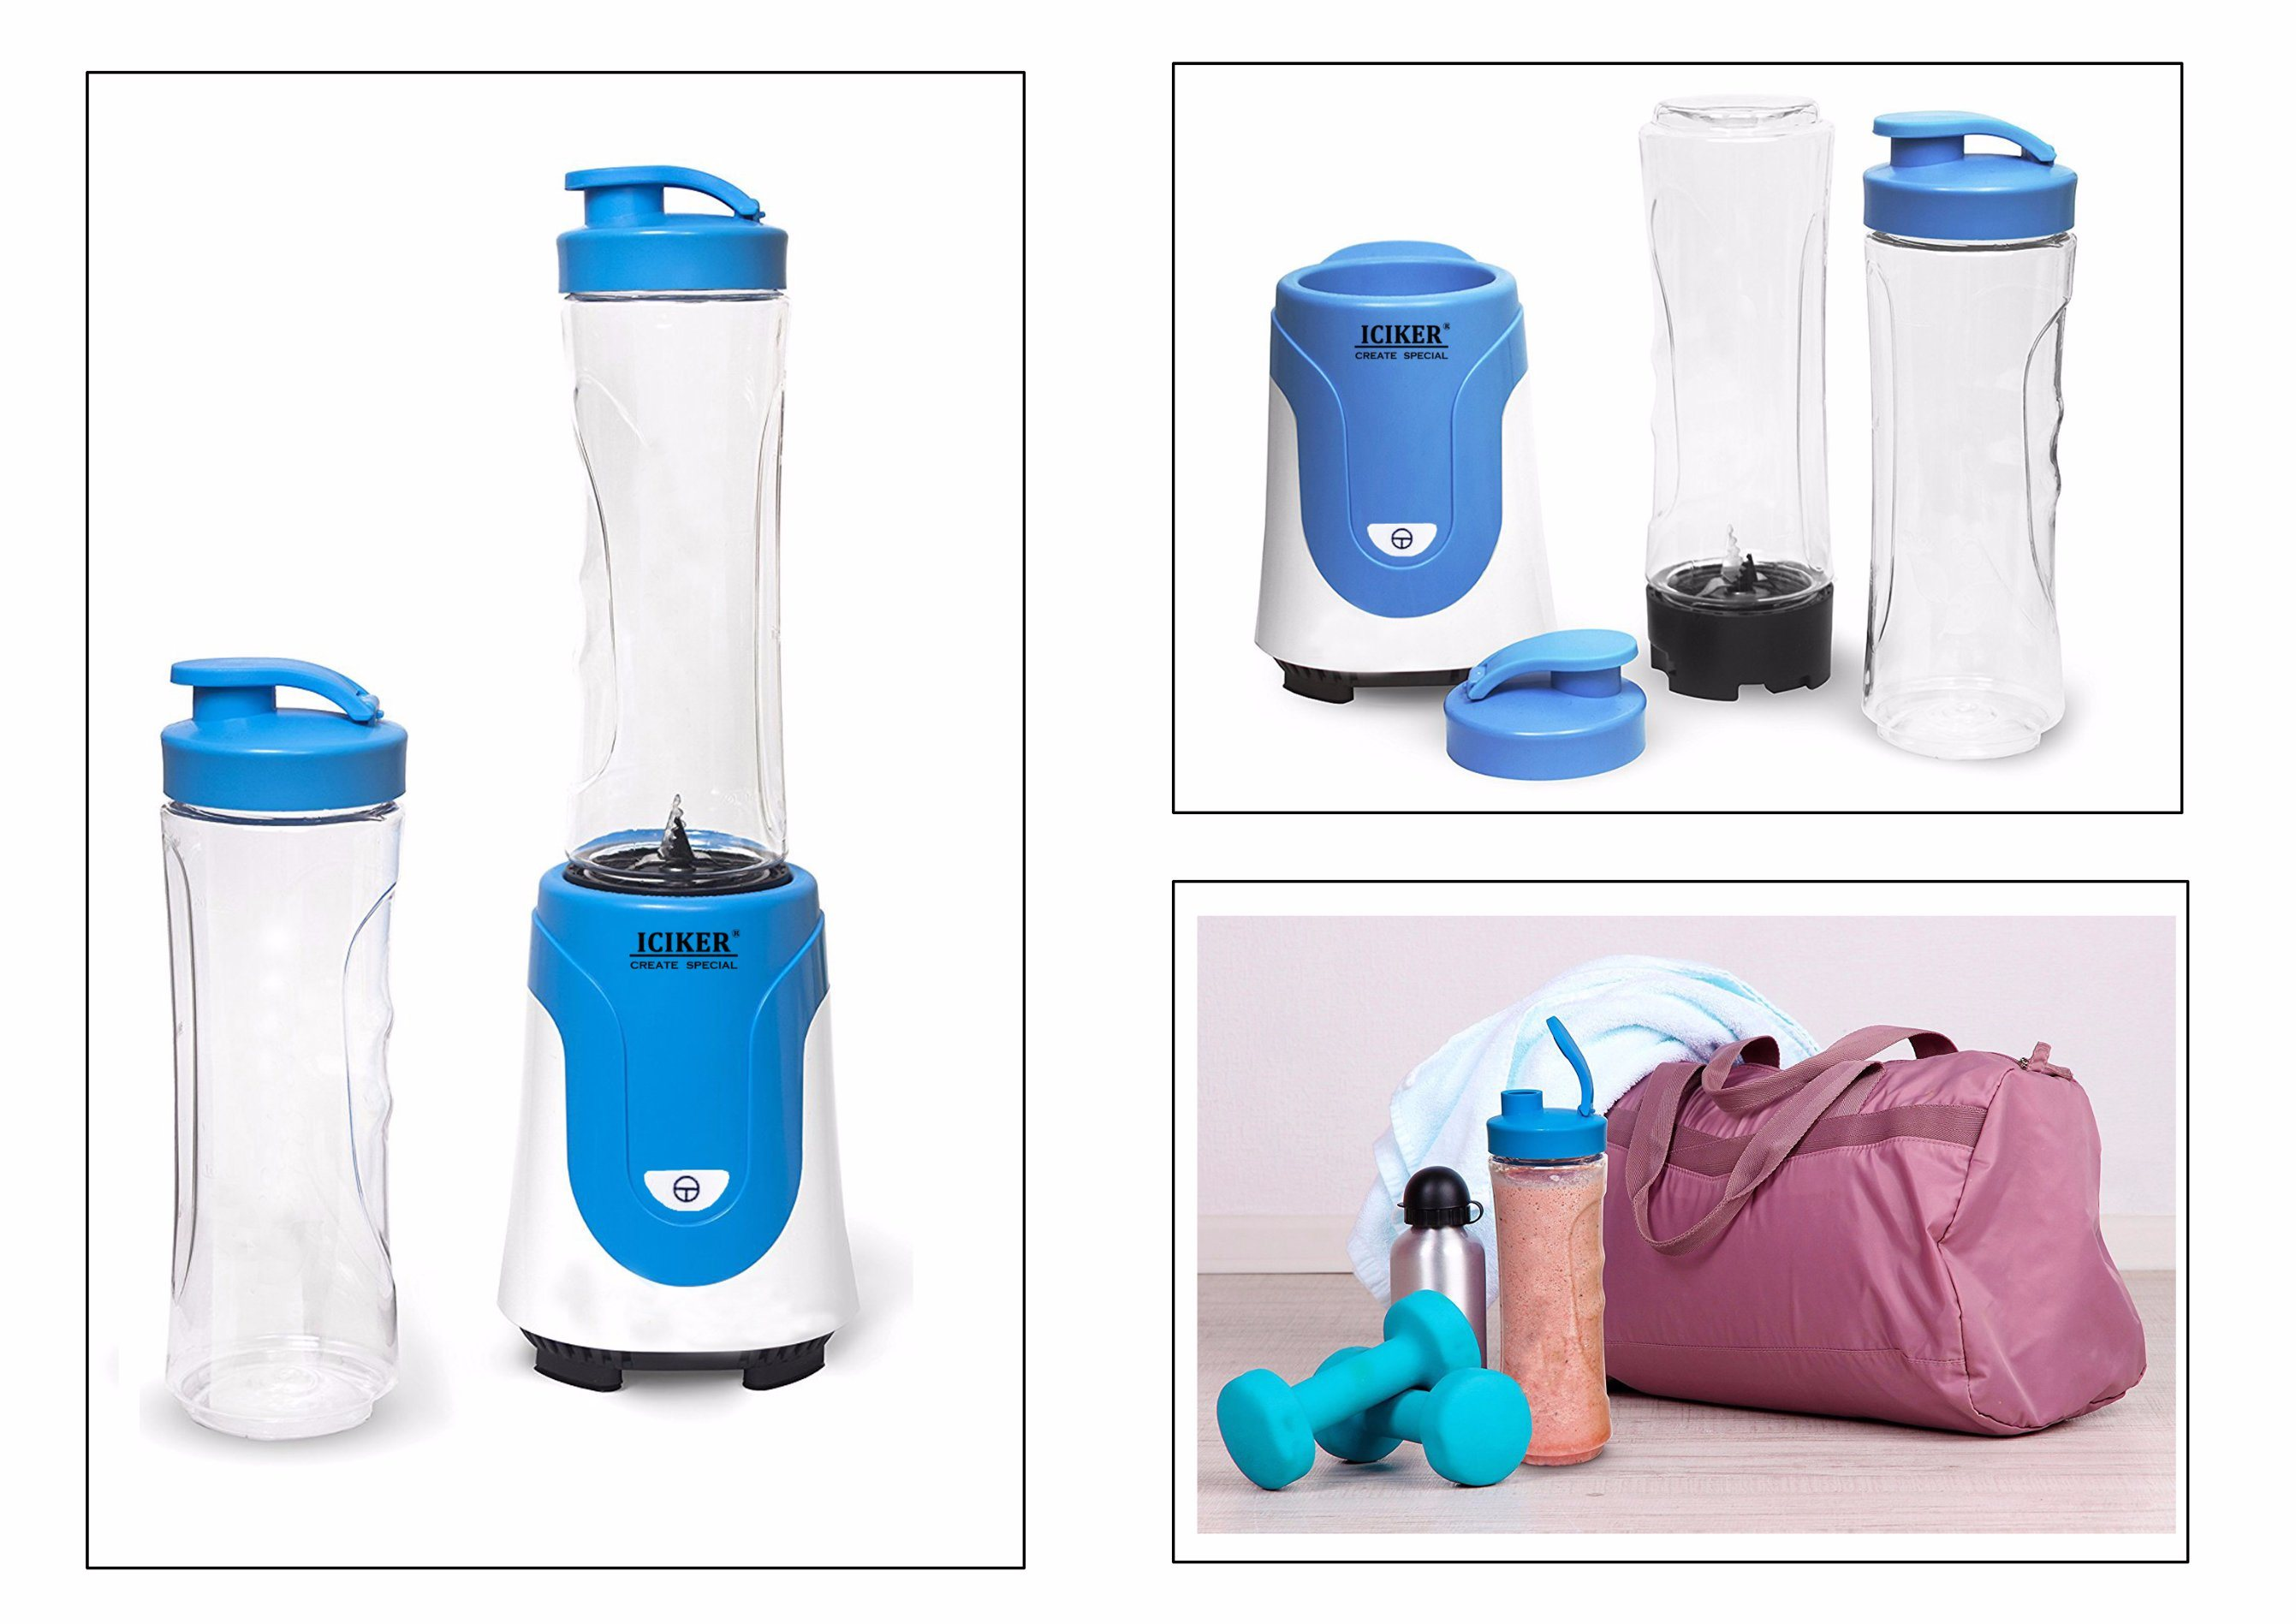 Personal Blender with BPA-Free Go Cup